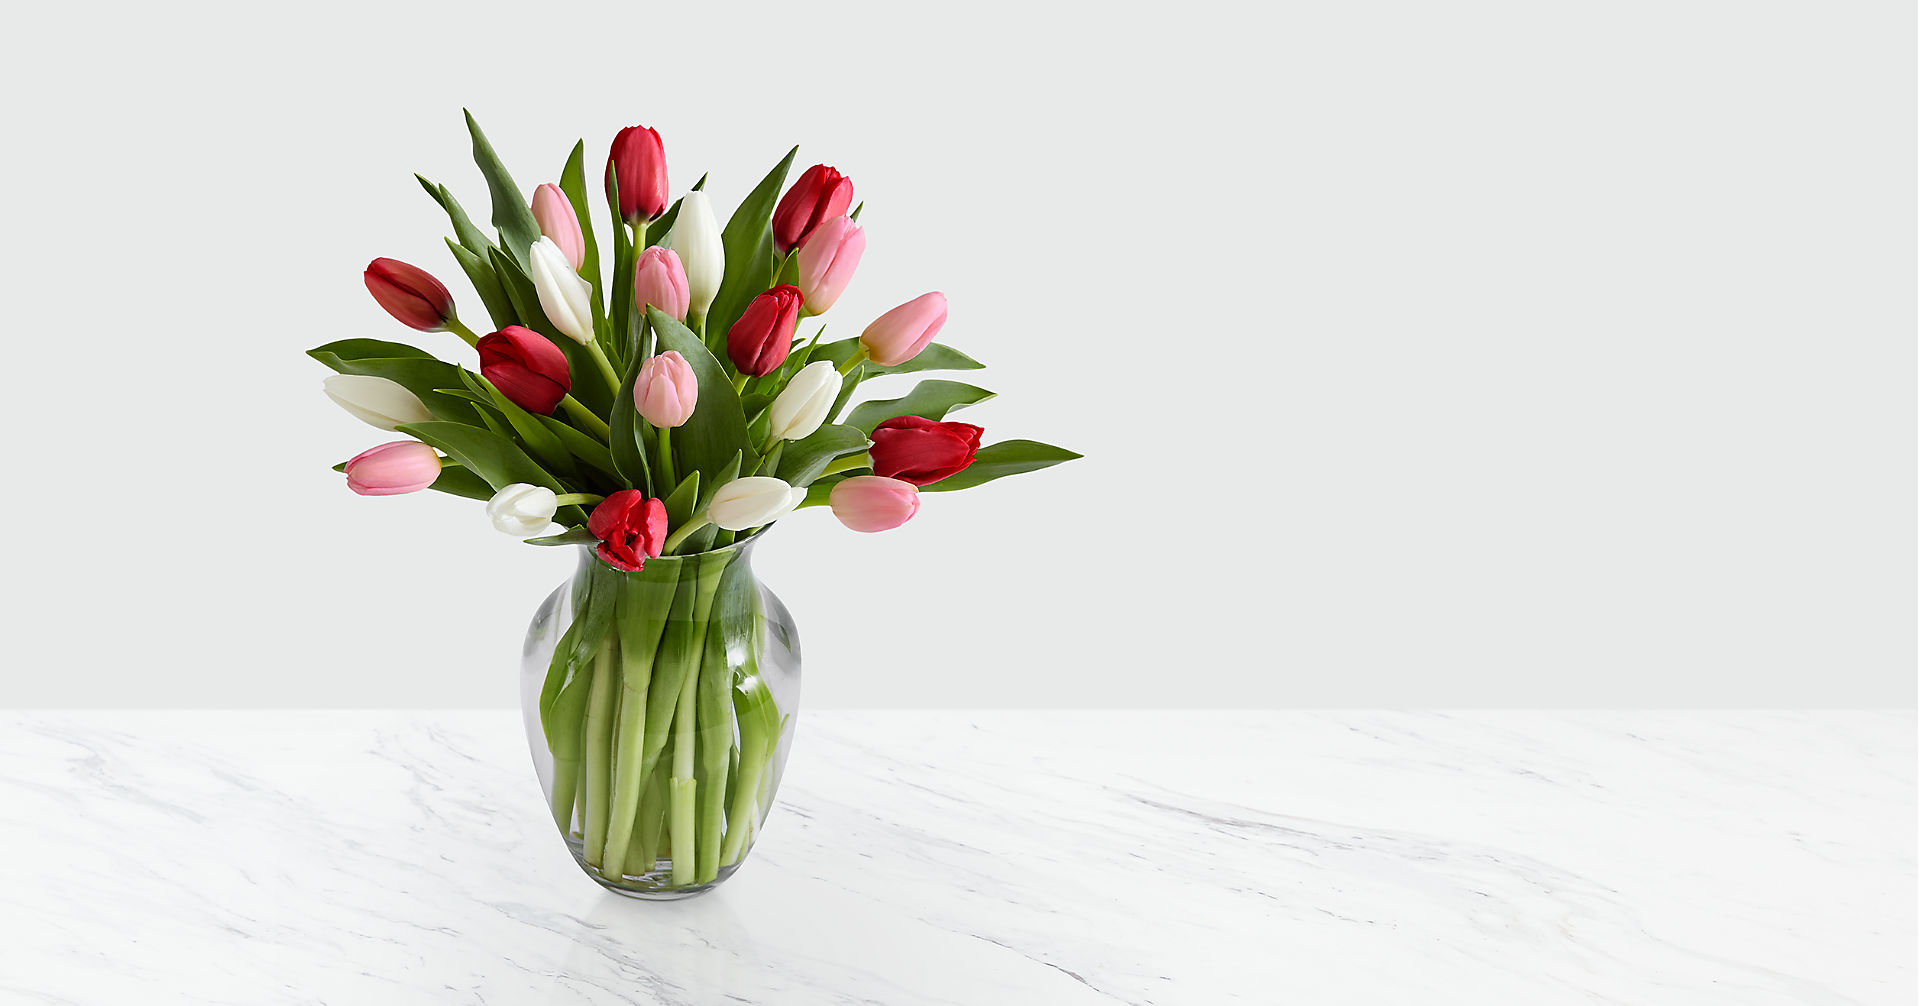 Here in My Heart Valentine Tulip Bouquet VASE INCLUDED - Image 1 Of 2